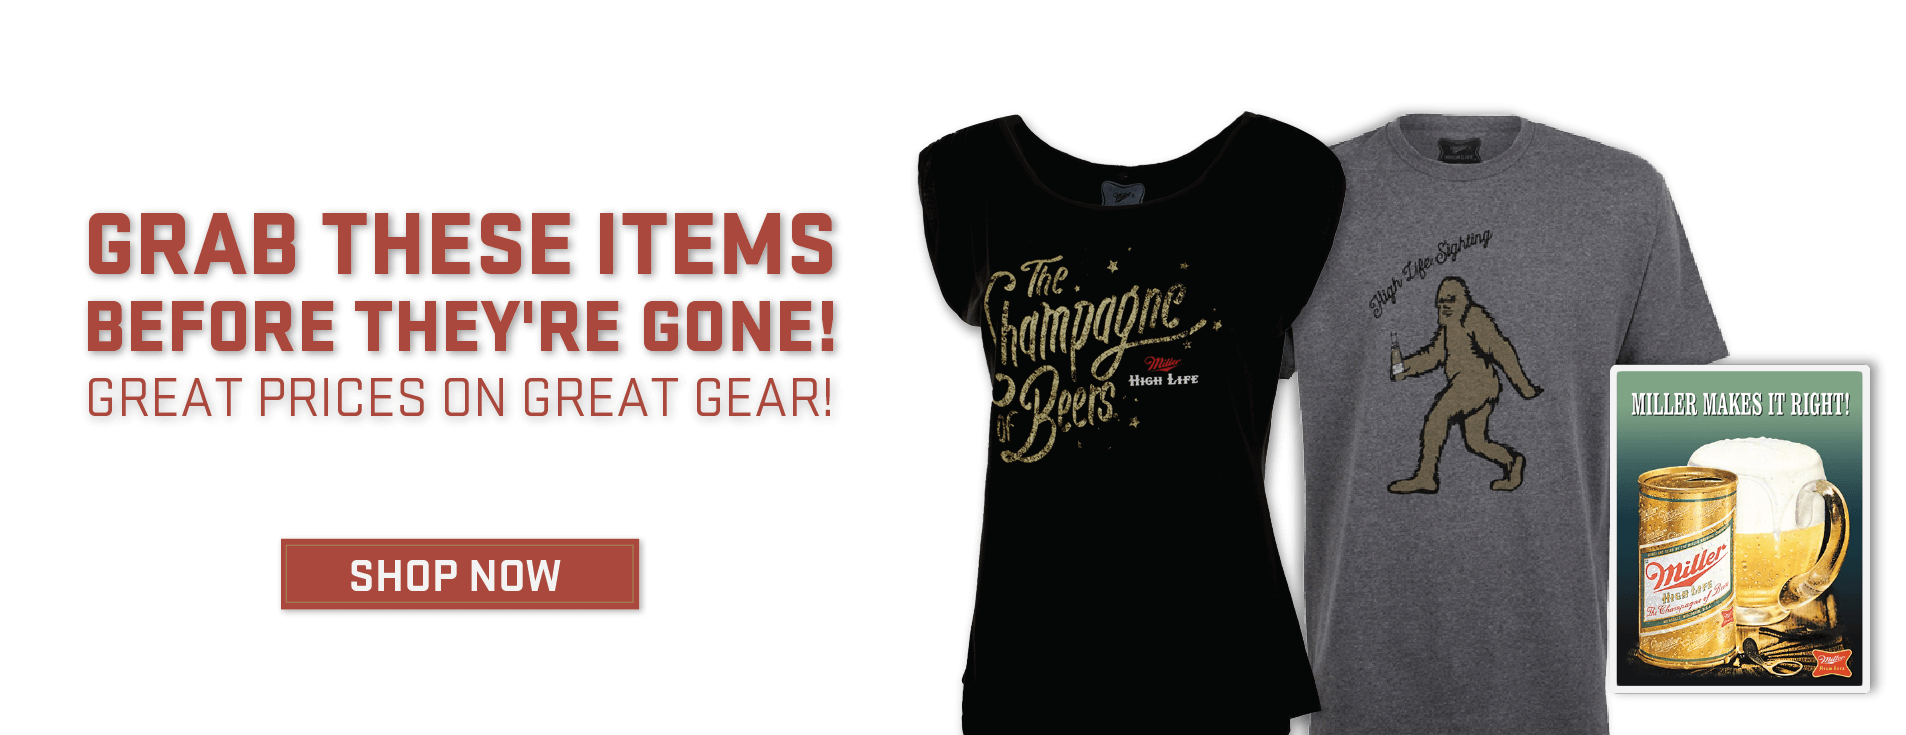 Grab These Items Before They're Gone!